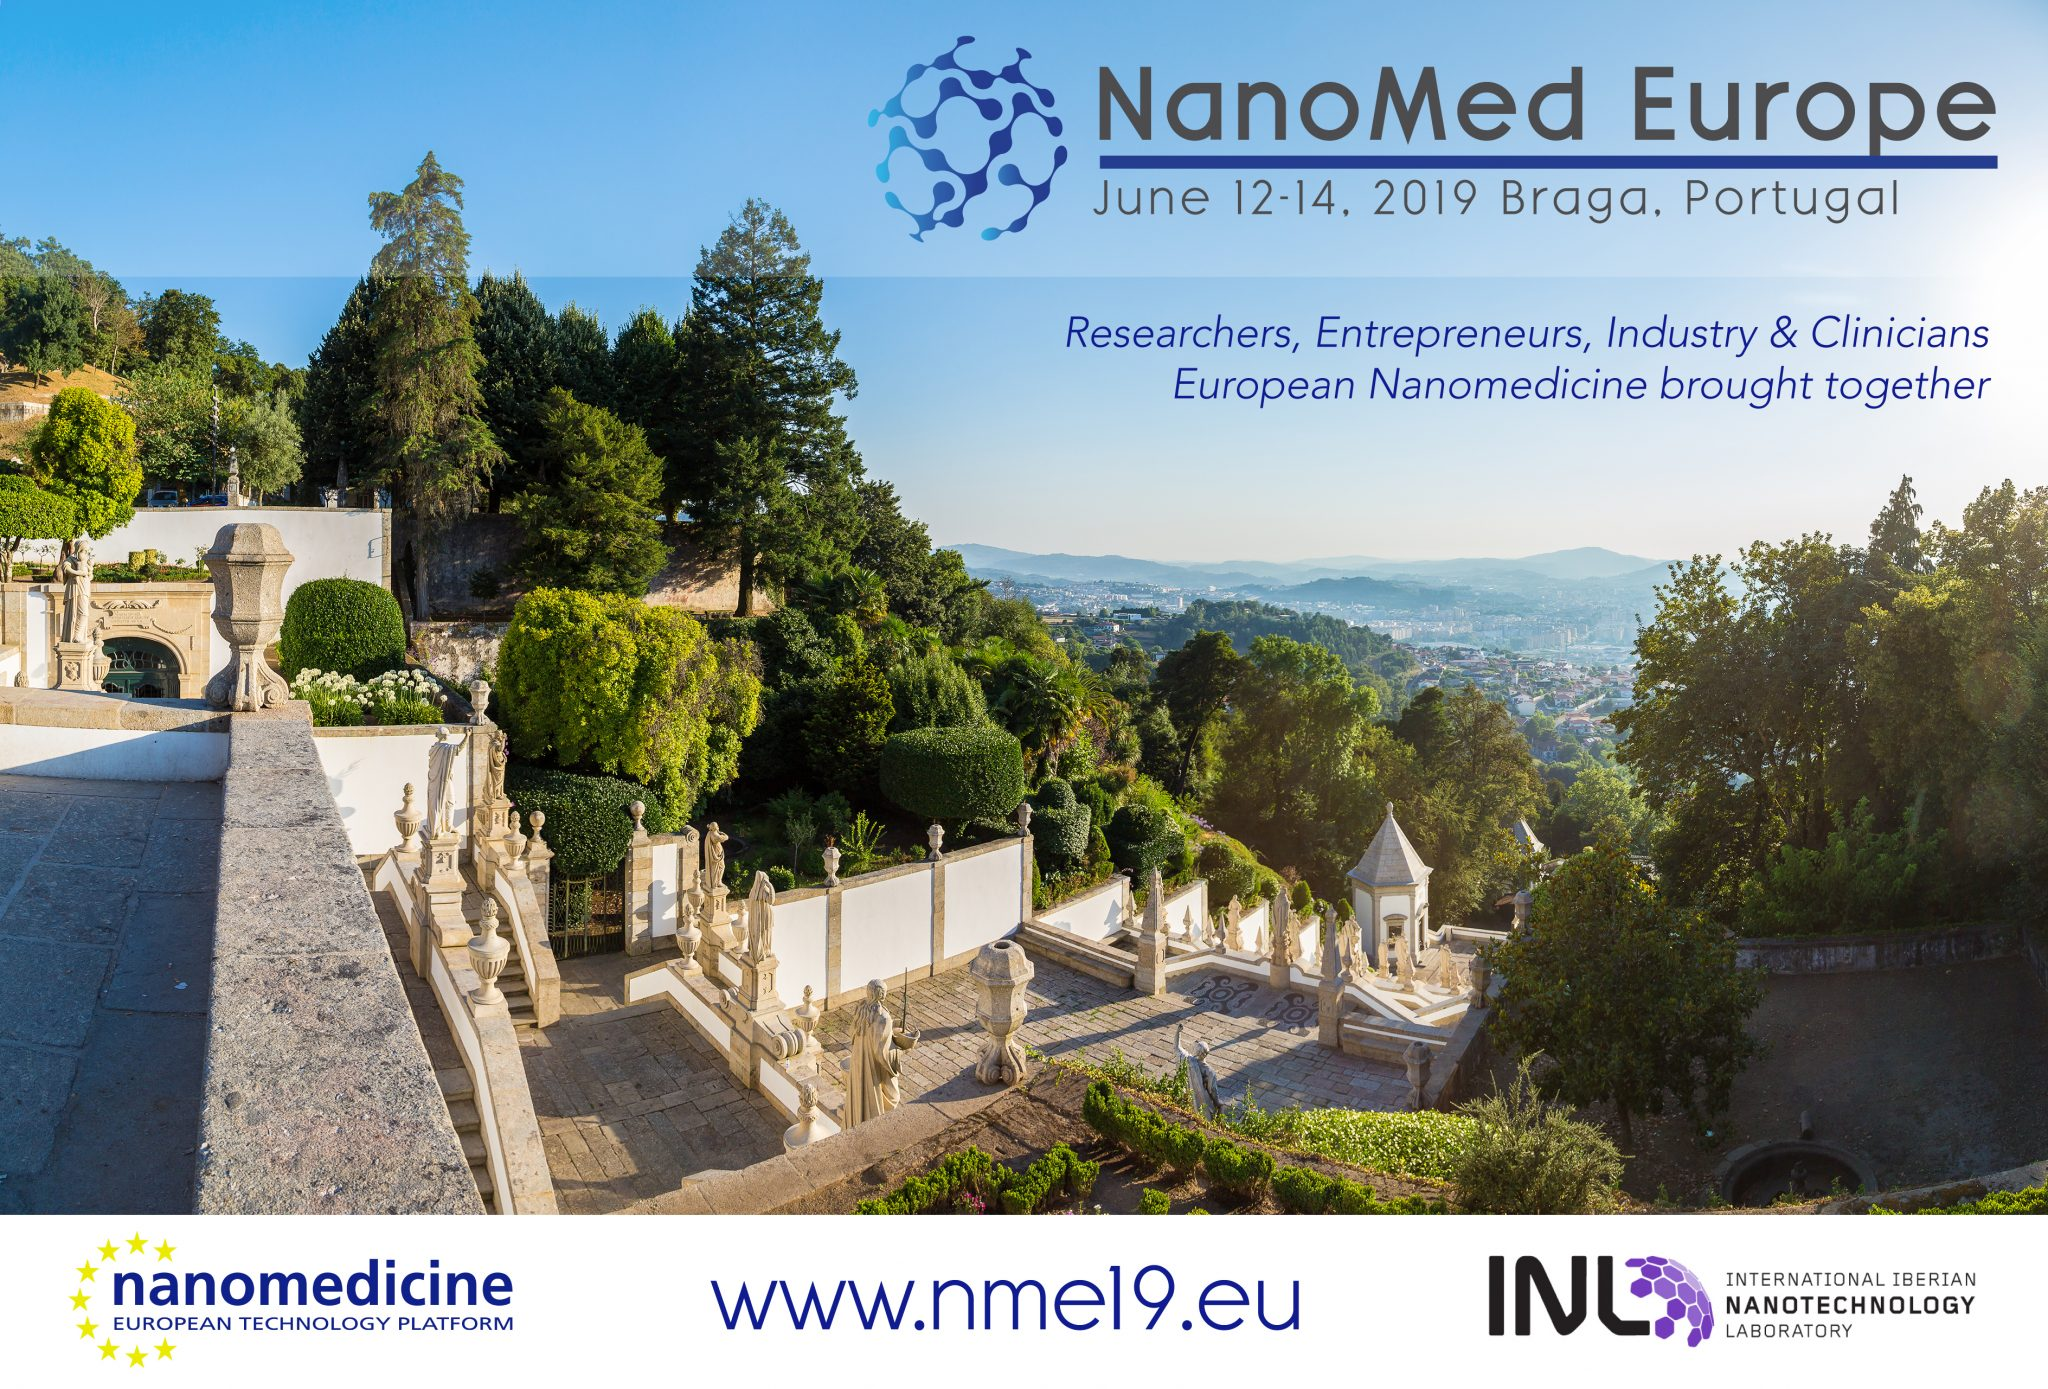 Nanomed Europe 2019 – NME19 – June 12-14 – Braga, Portugal